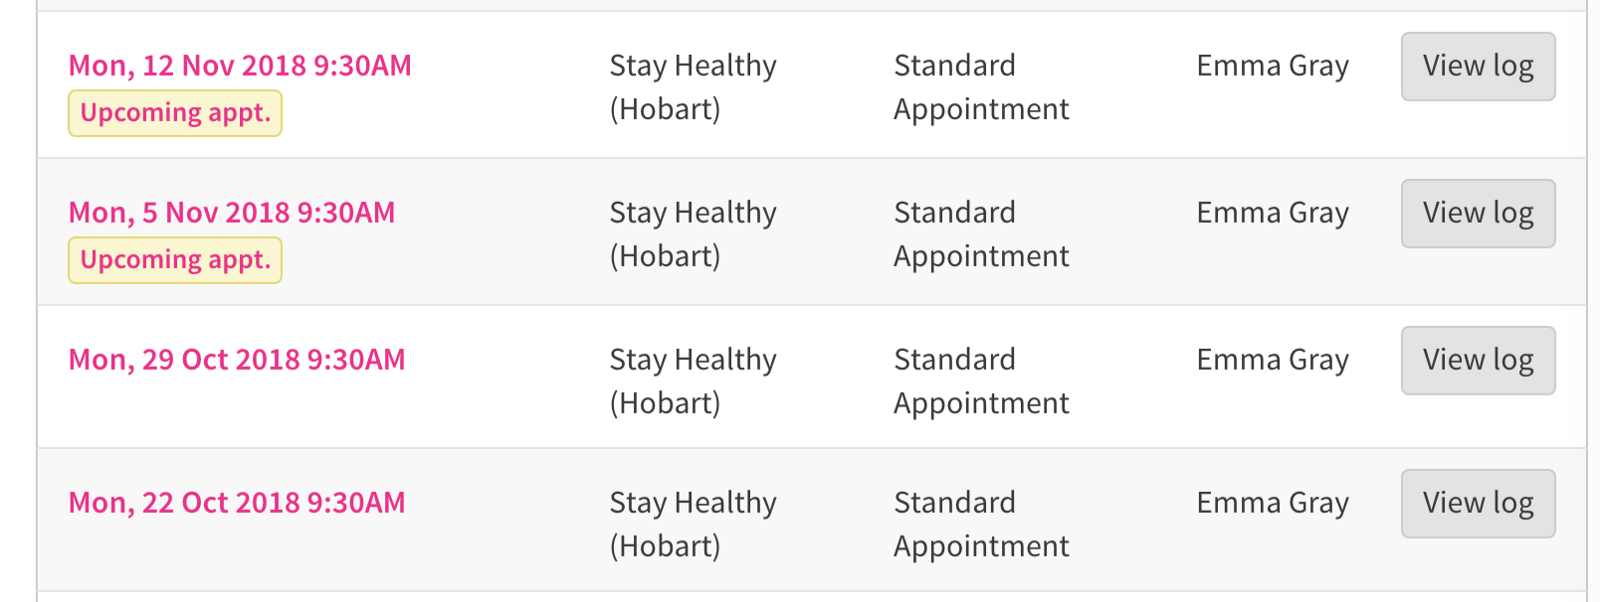 List of appointment with labels.